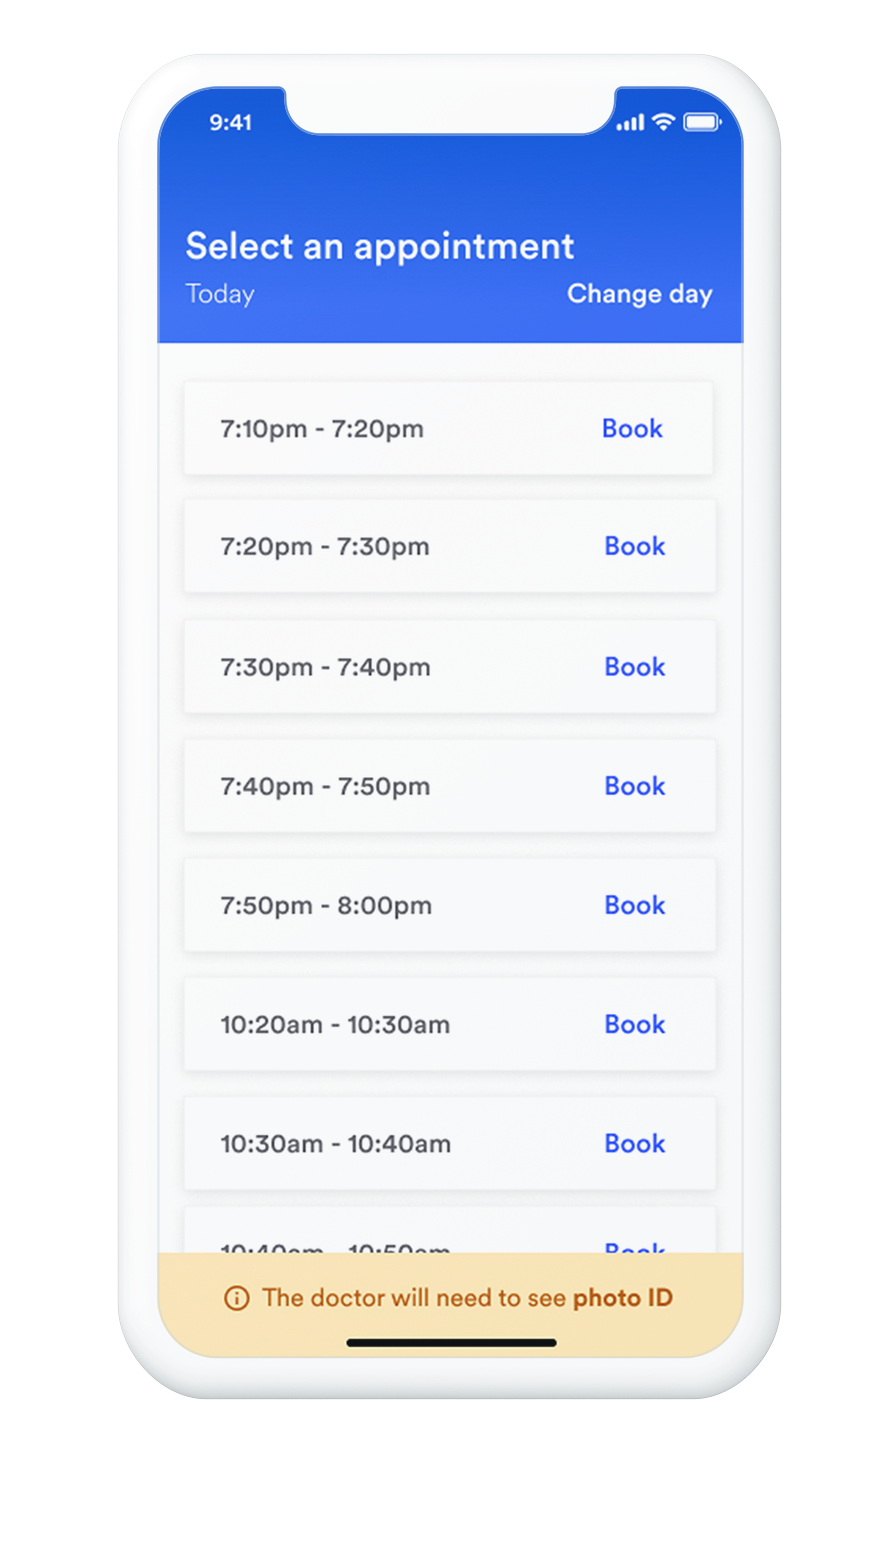 iPhone with book appointment screen